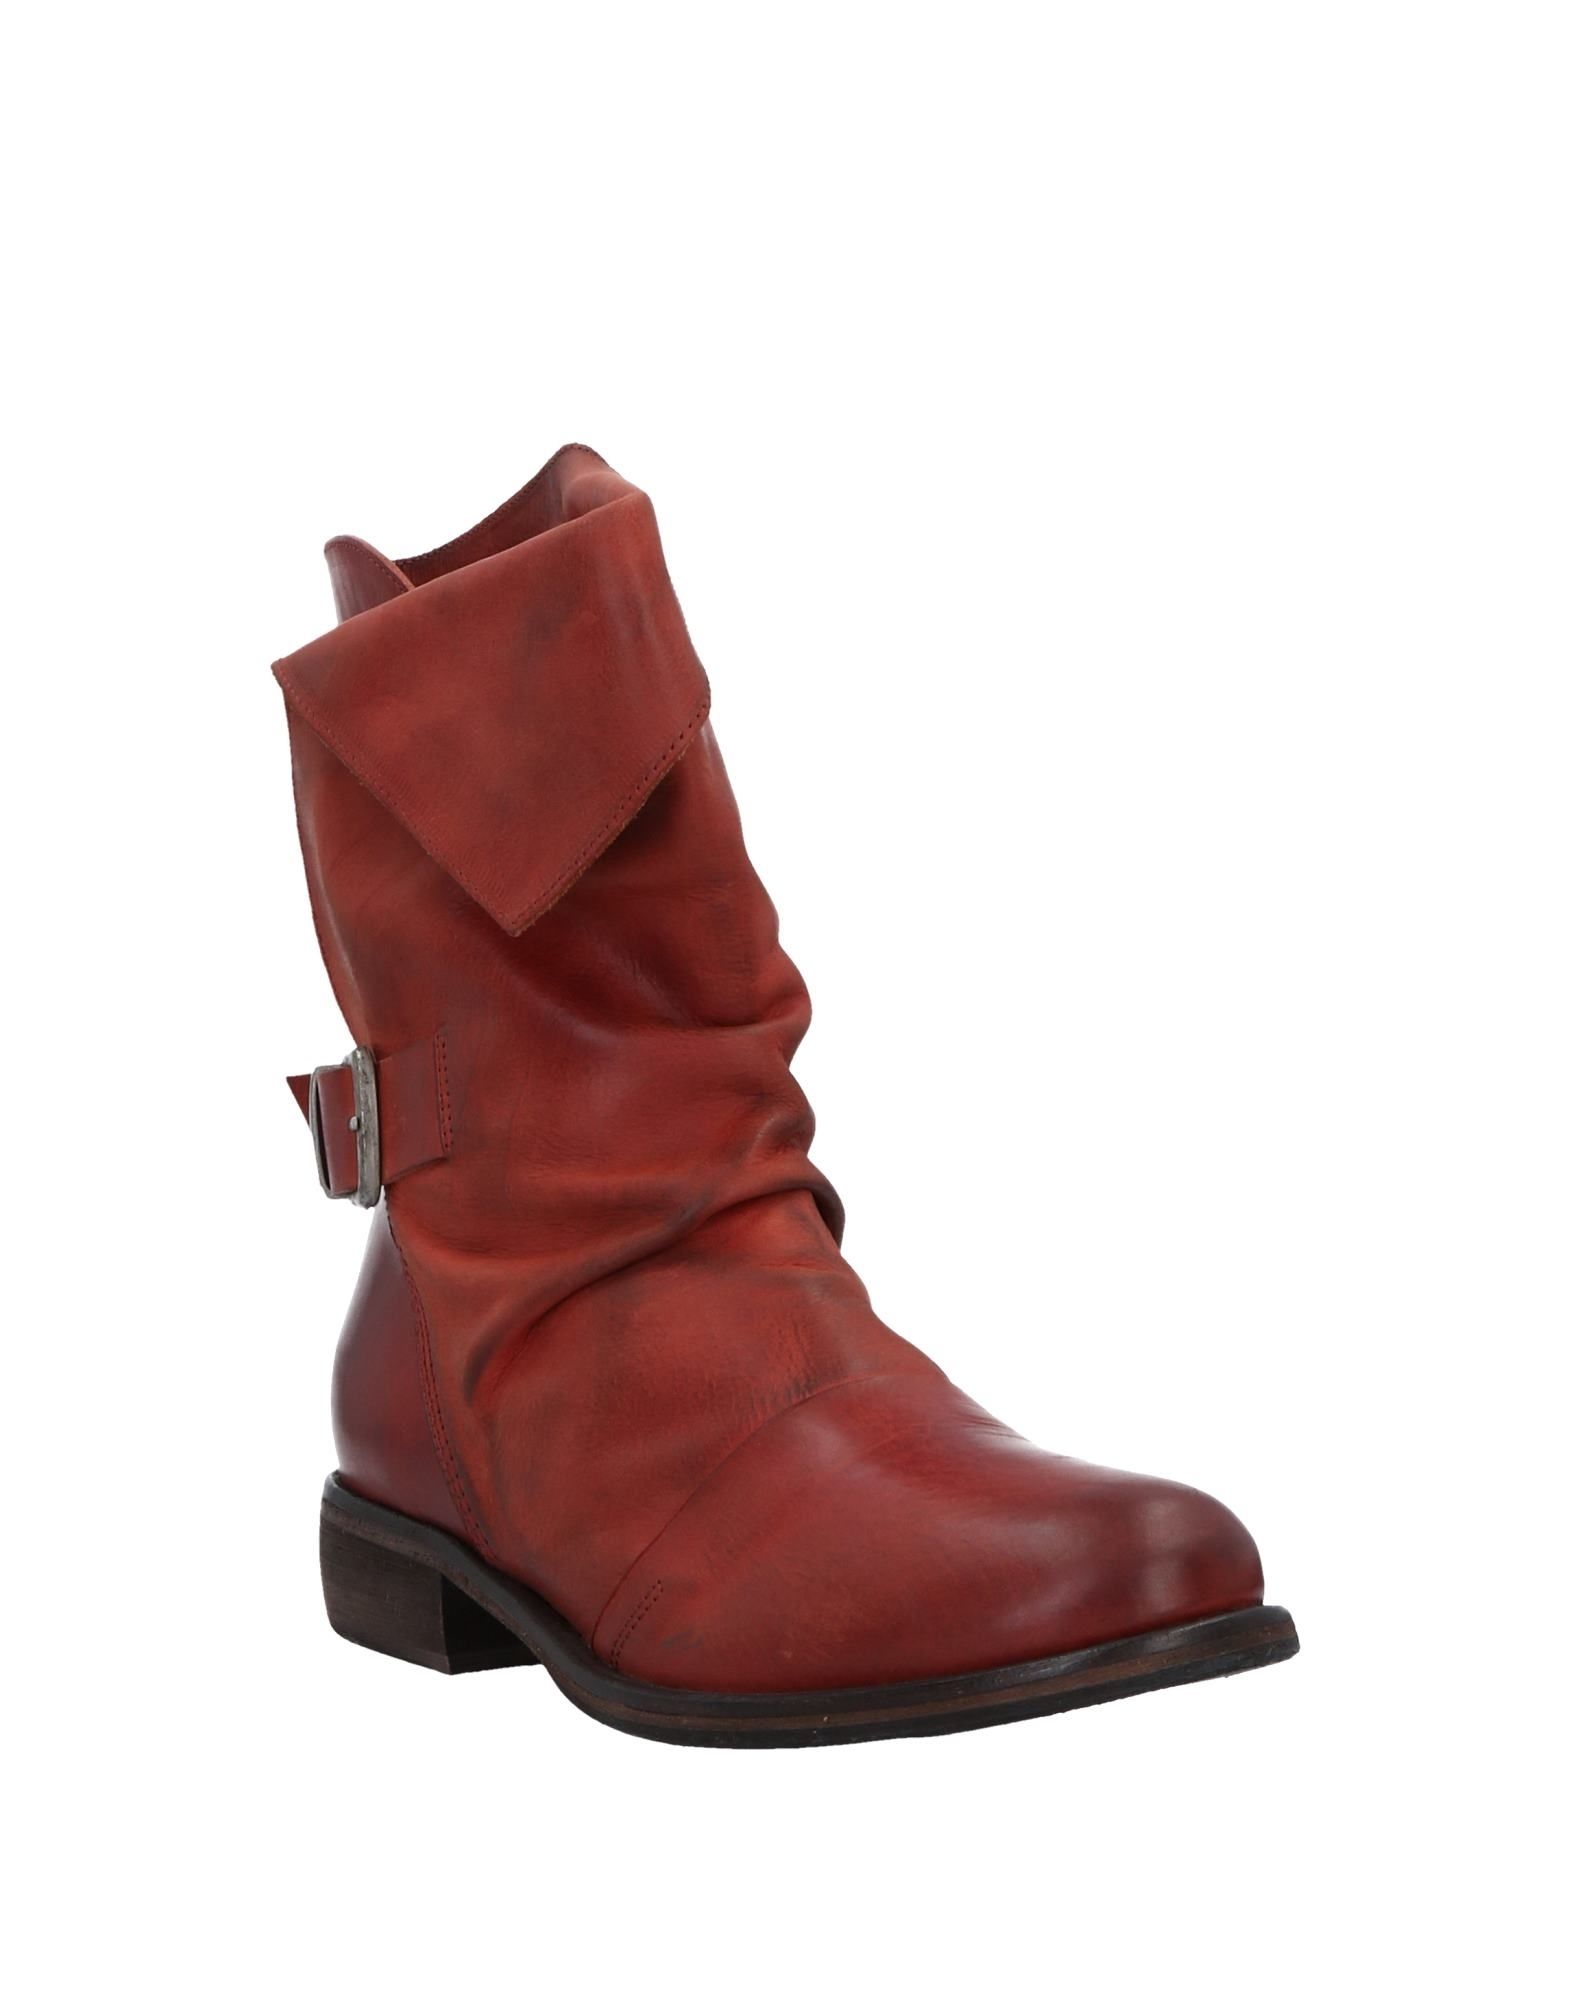 manille grace denim 11513732qb bottines - femmes manille grace jean 11513732qb denim bottines en ligne sur l'australie - dea7a5